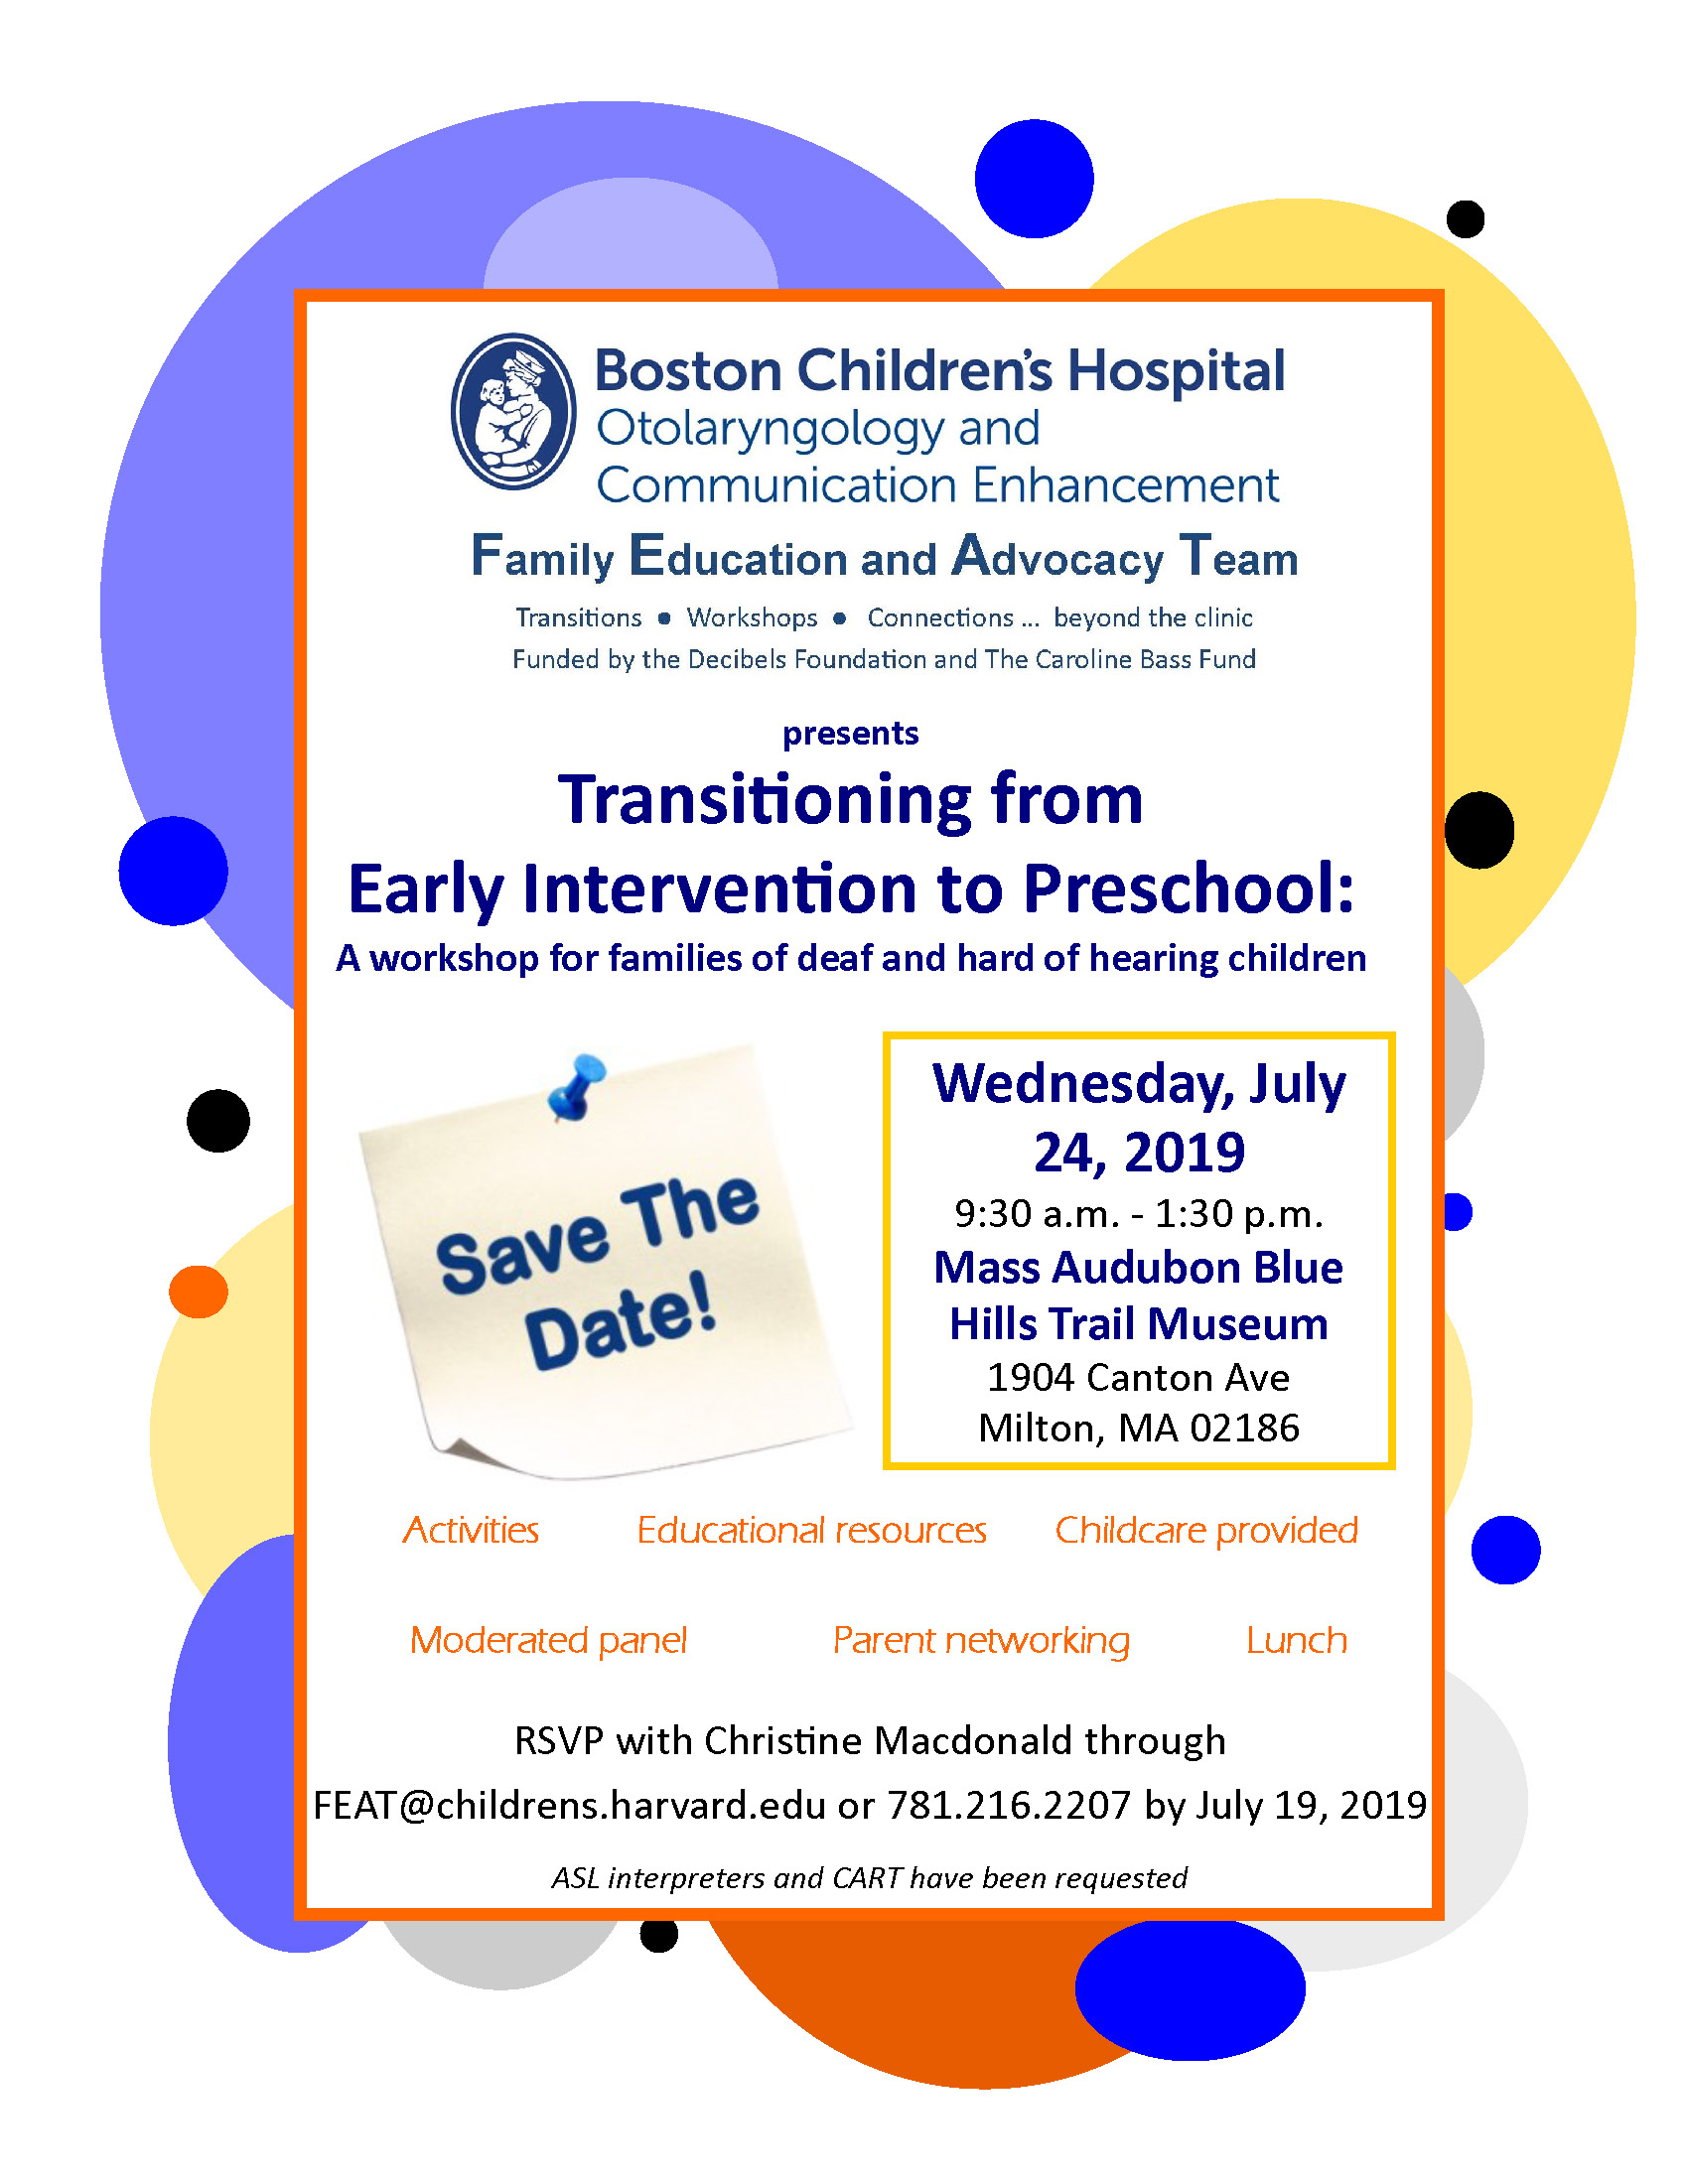 Early Intervention to Preschool Workshop